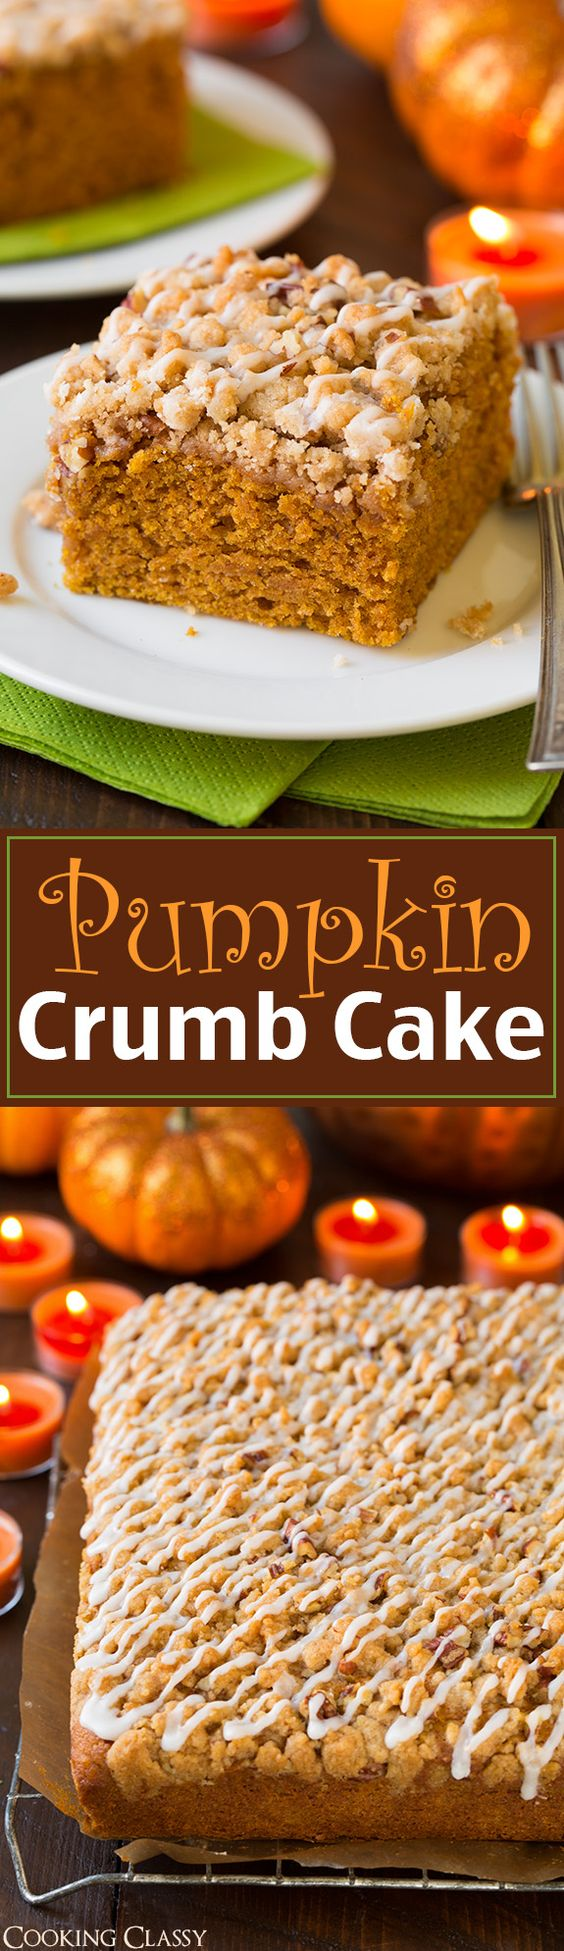 Pumpkin Crumb Cake - delicious!! This cake is so tender and moist and it's loaded with cinnamon crumbs! (pumpkin desserts, recipes)